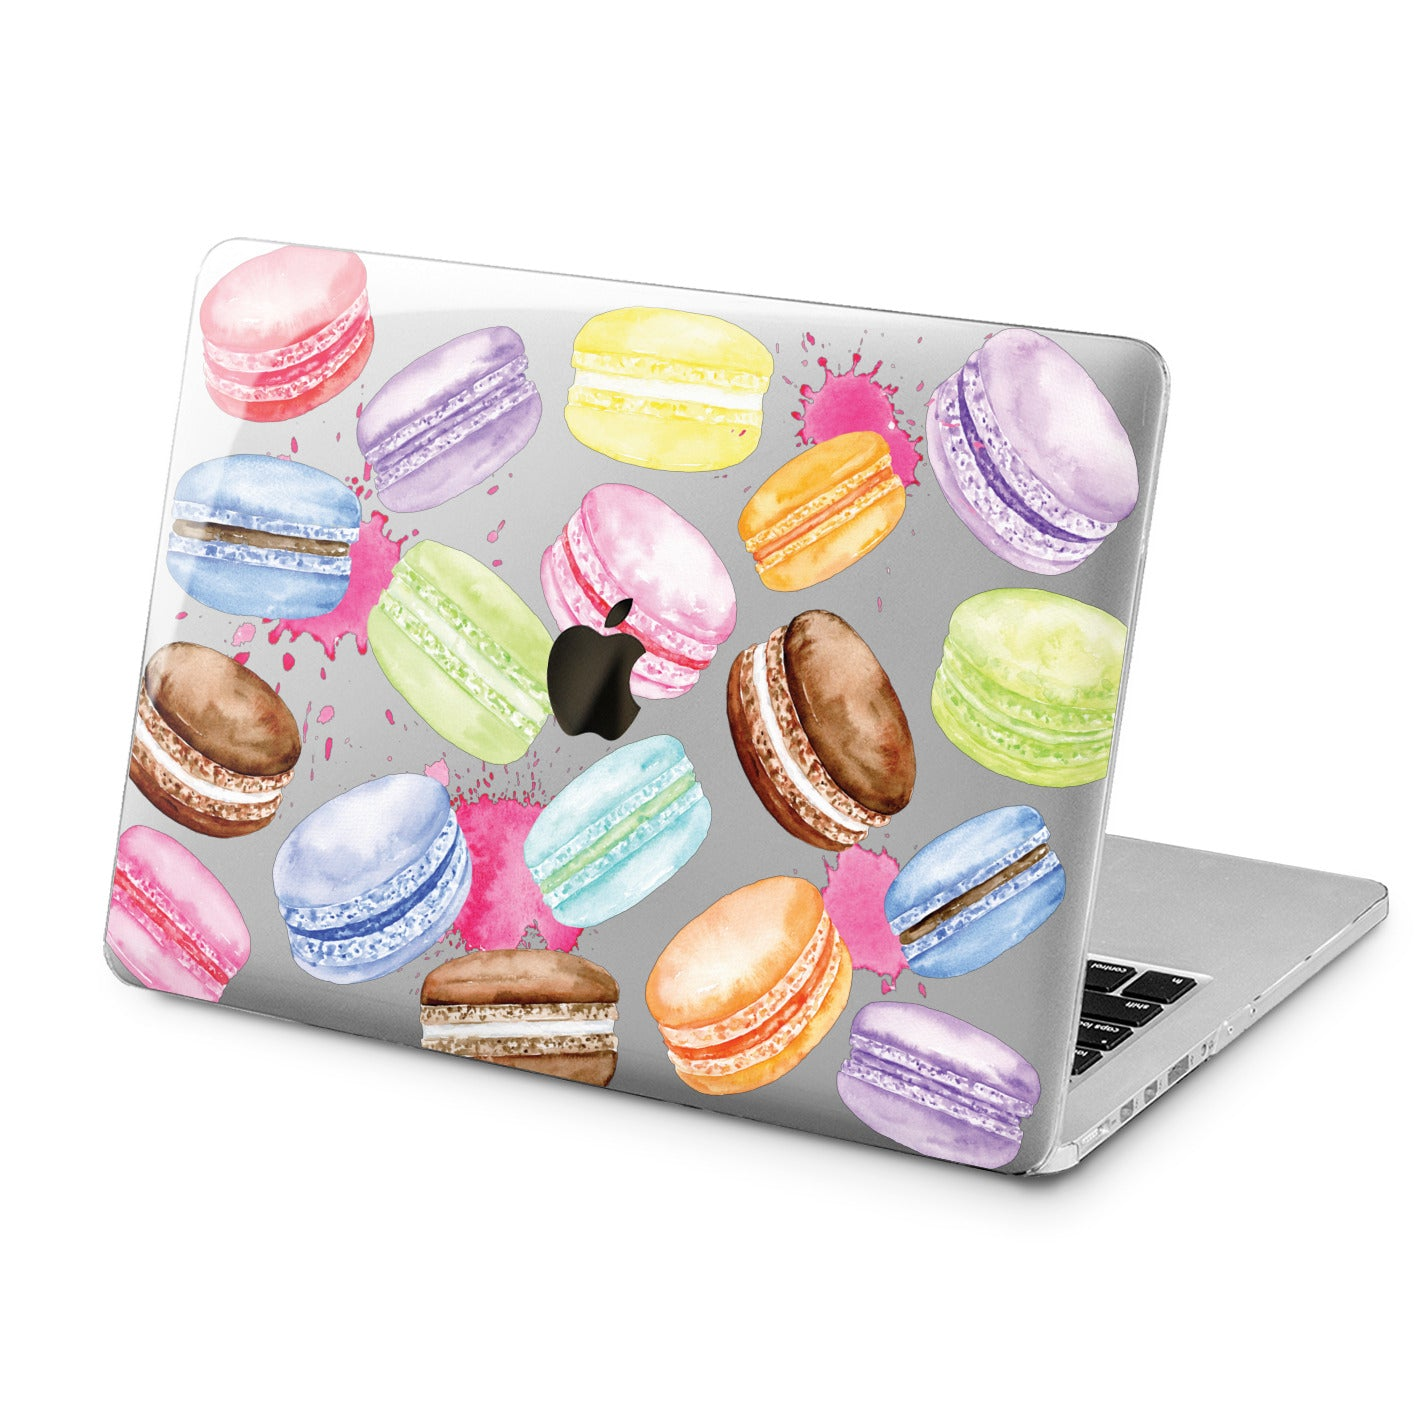 Lex Altern Lex Altern Macaroon Cookies Case for your Laptop Apple Macbook.